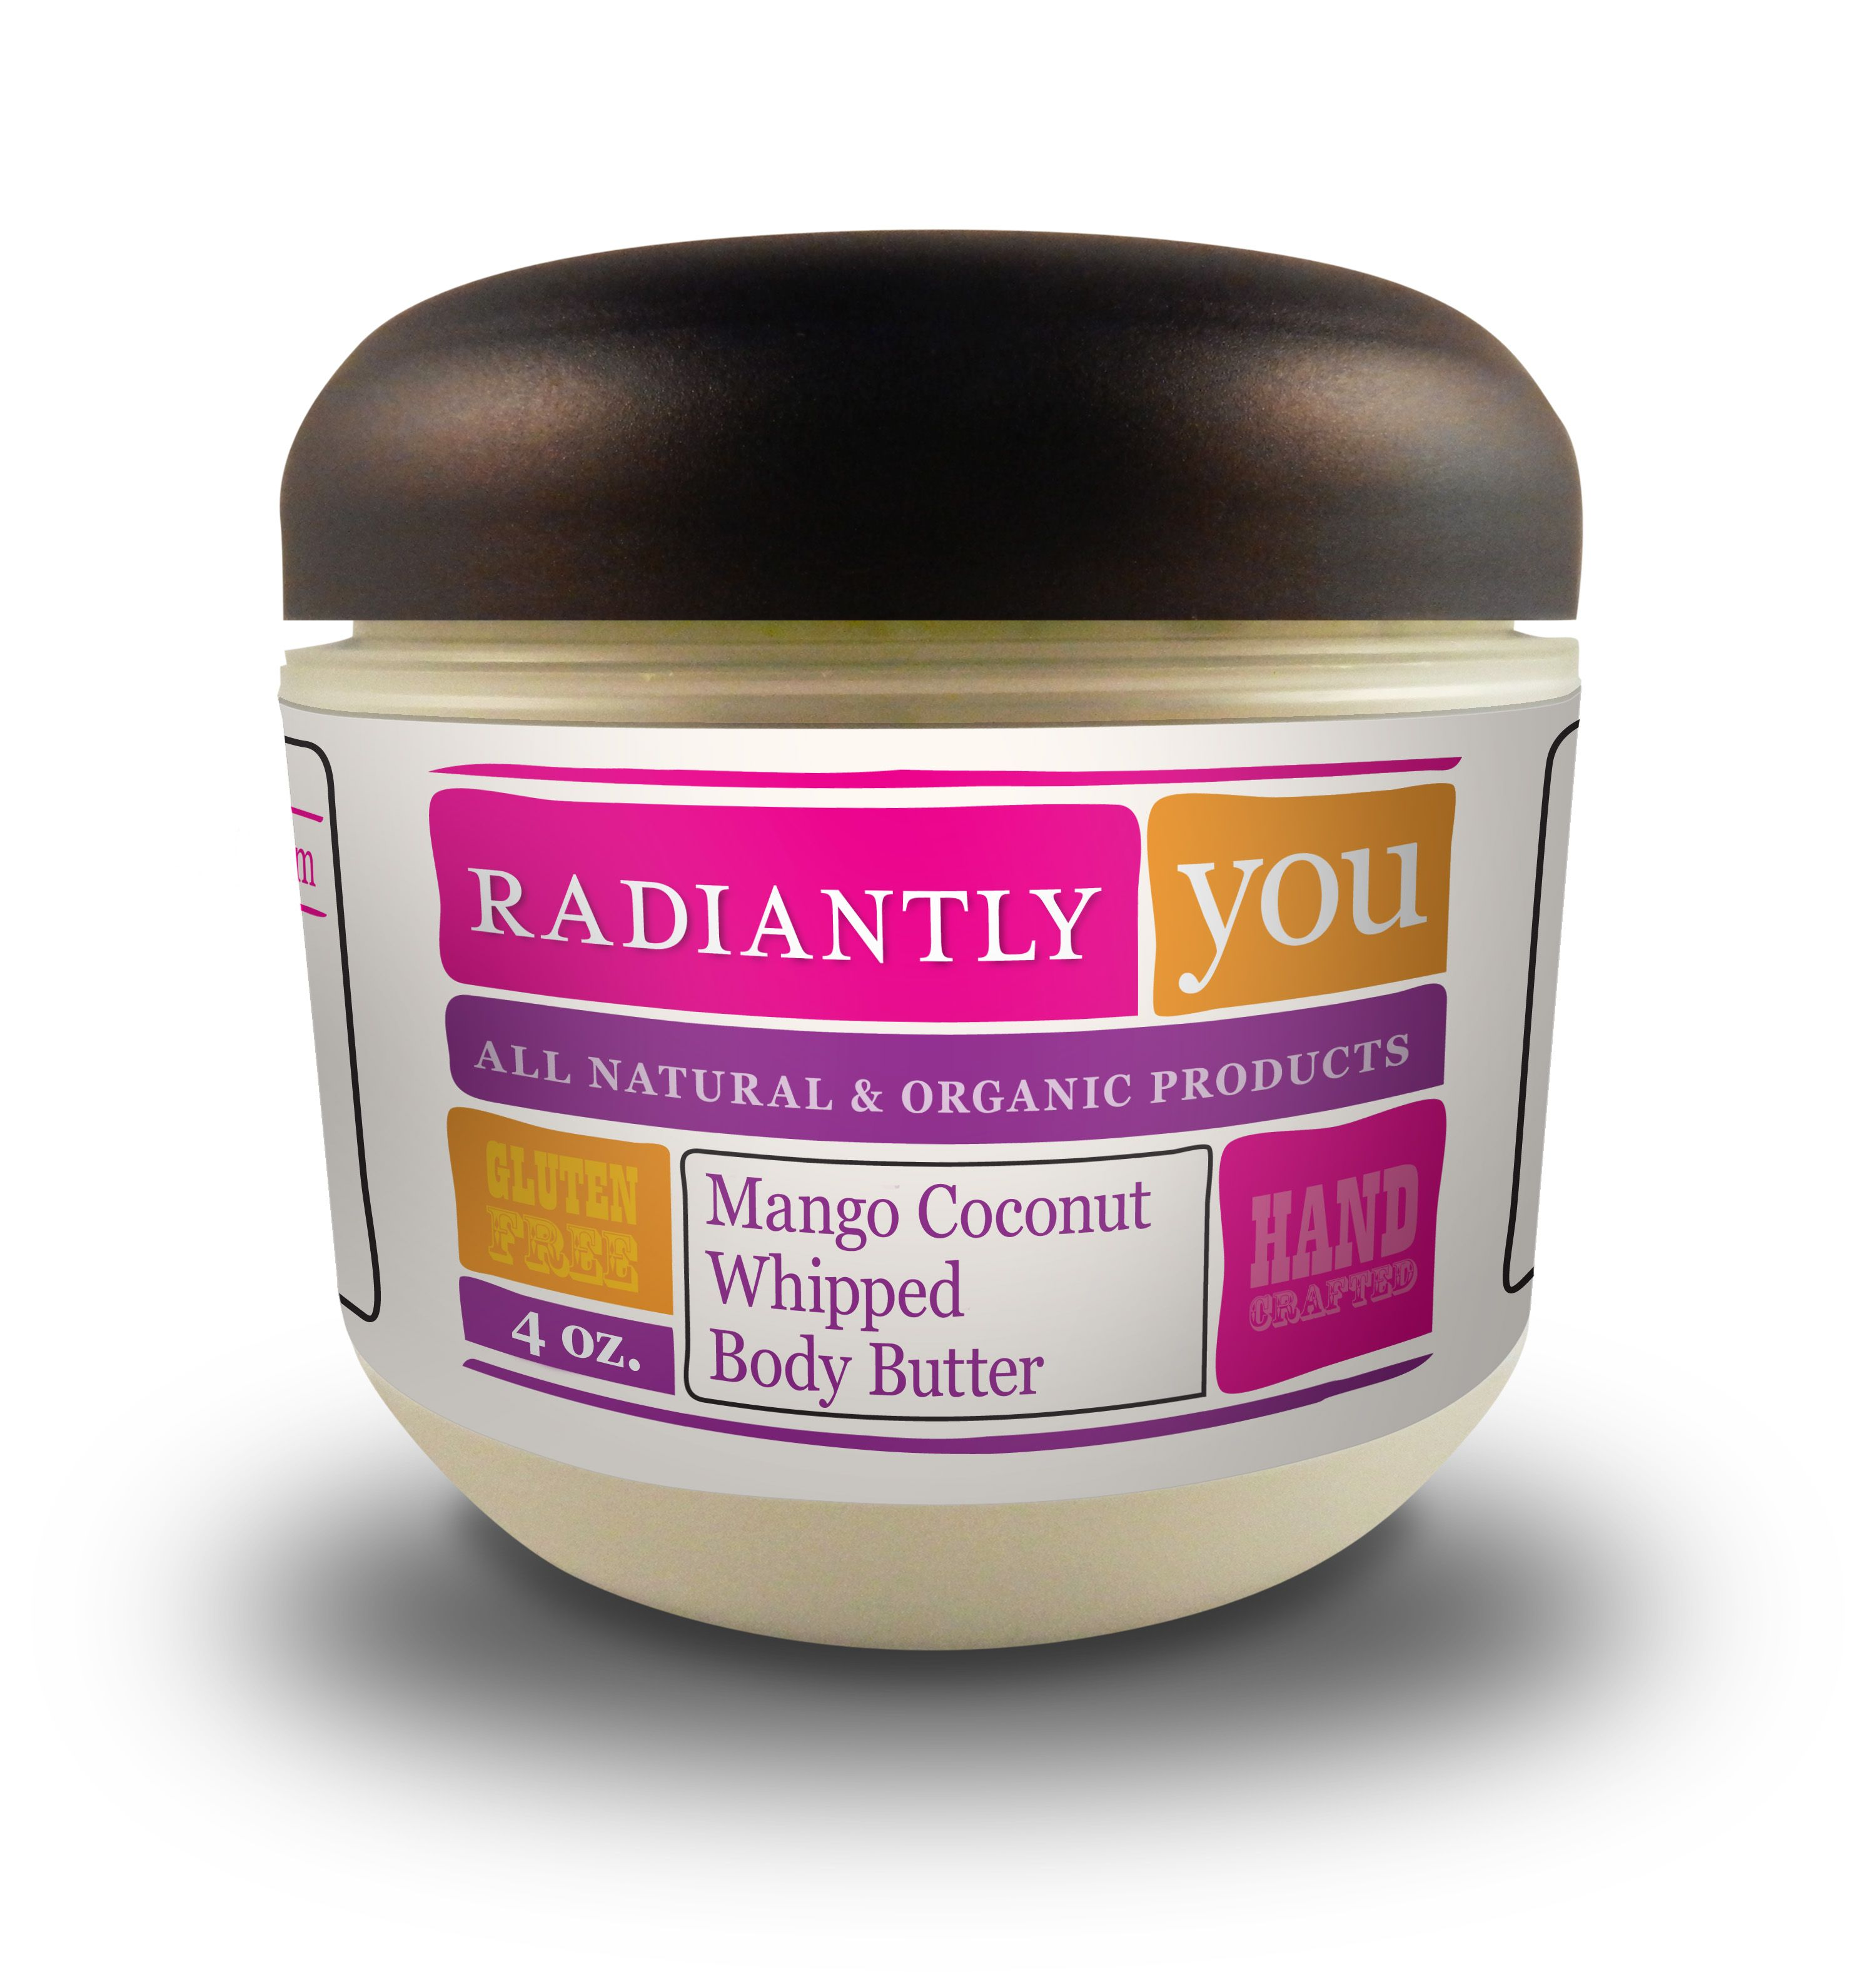 Send yourself to your favorite tropical island every time you lather your skin with this fabulous Mango Coconut Whipped Body Butter! The scent is amazing and transports you in seconds to a sunny beach. You won't find a better body butter out there! Nourish your skin with only the finest ingredients!    Nourishing you with: Unrefined Shea Butter*, Expeller-Pressed Coconut Oil*, Mango Coconut Fragrance Oils*  *Certified Organic